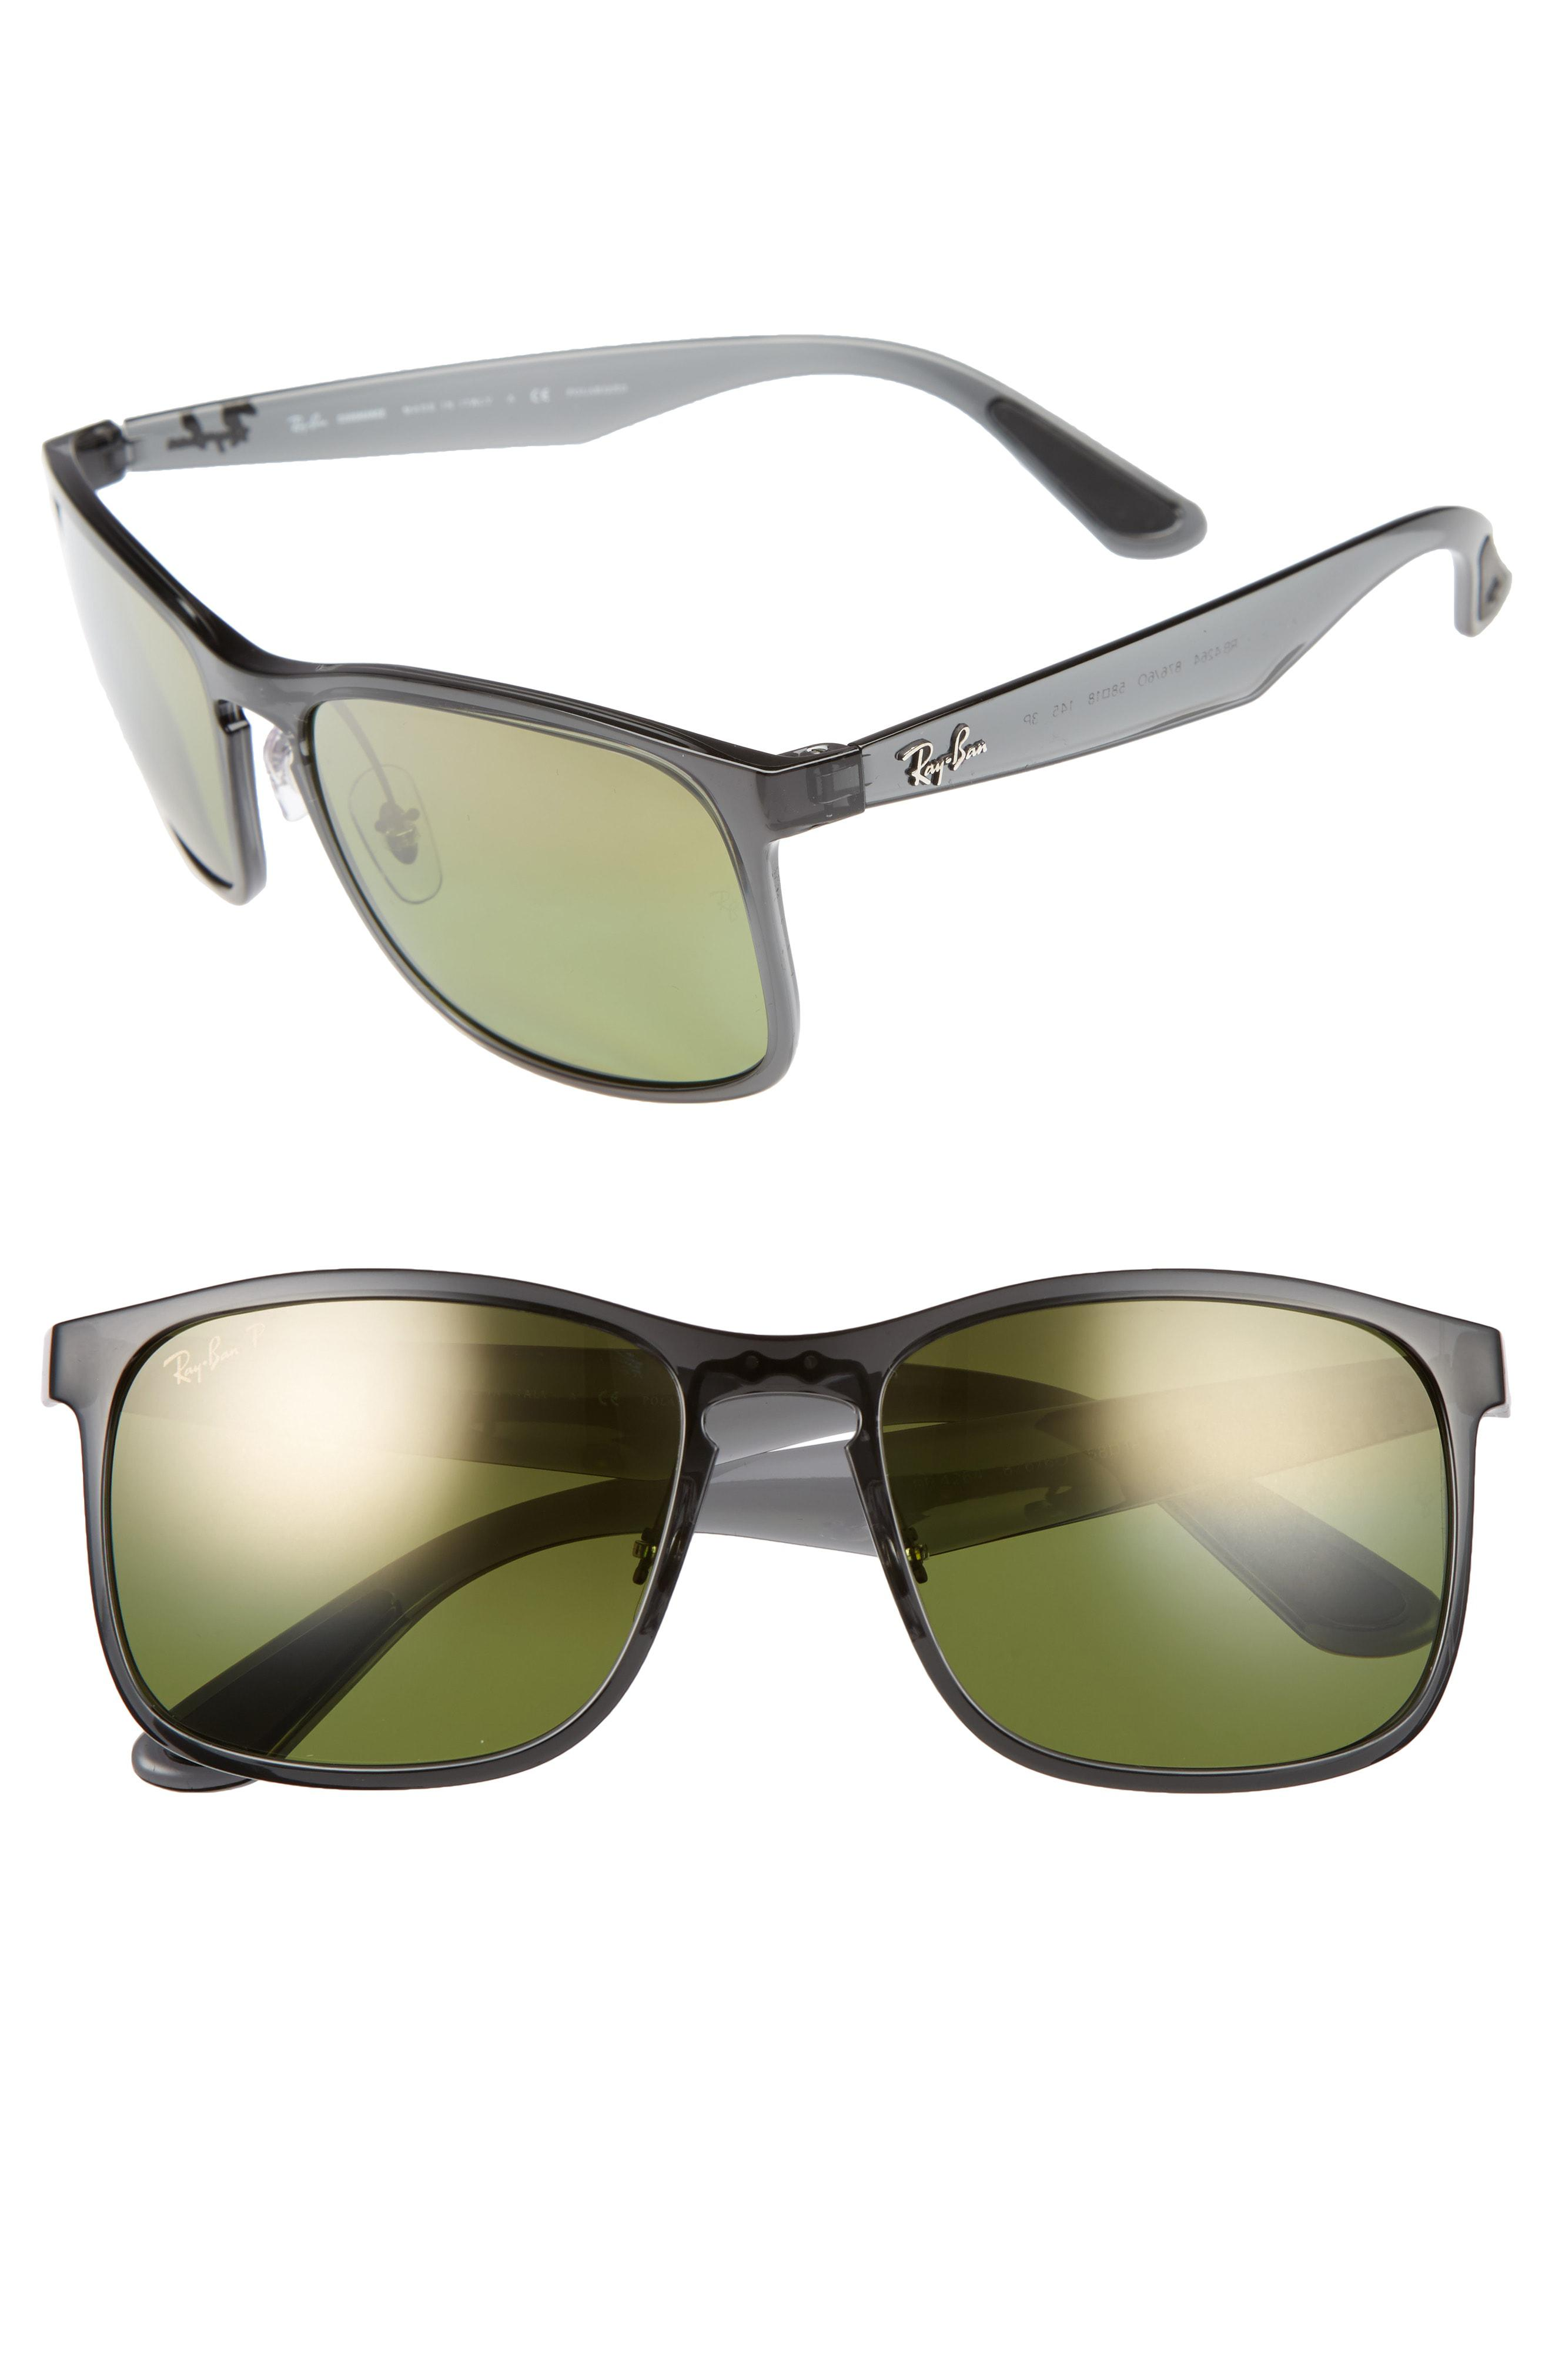 c5d0152822 Ray-Ban 58mm Chromance Sunglasses - Shiny Grey green Mirror Gold in ...